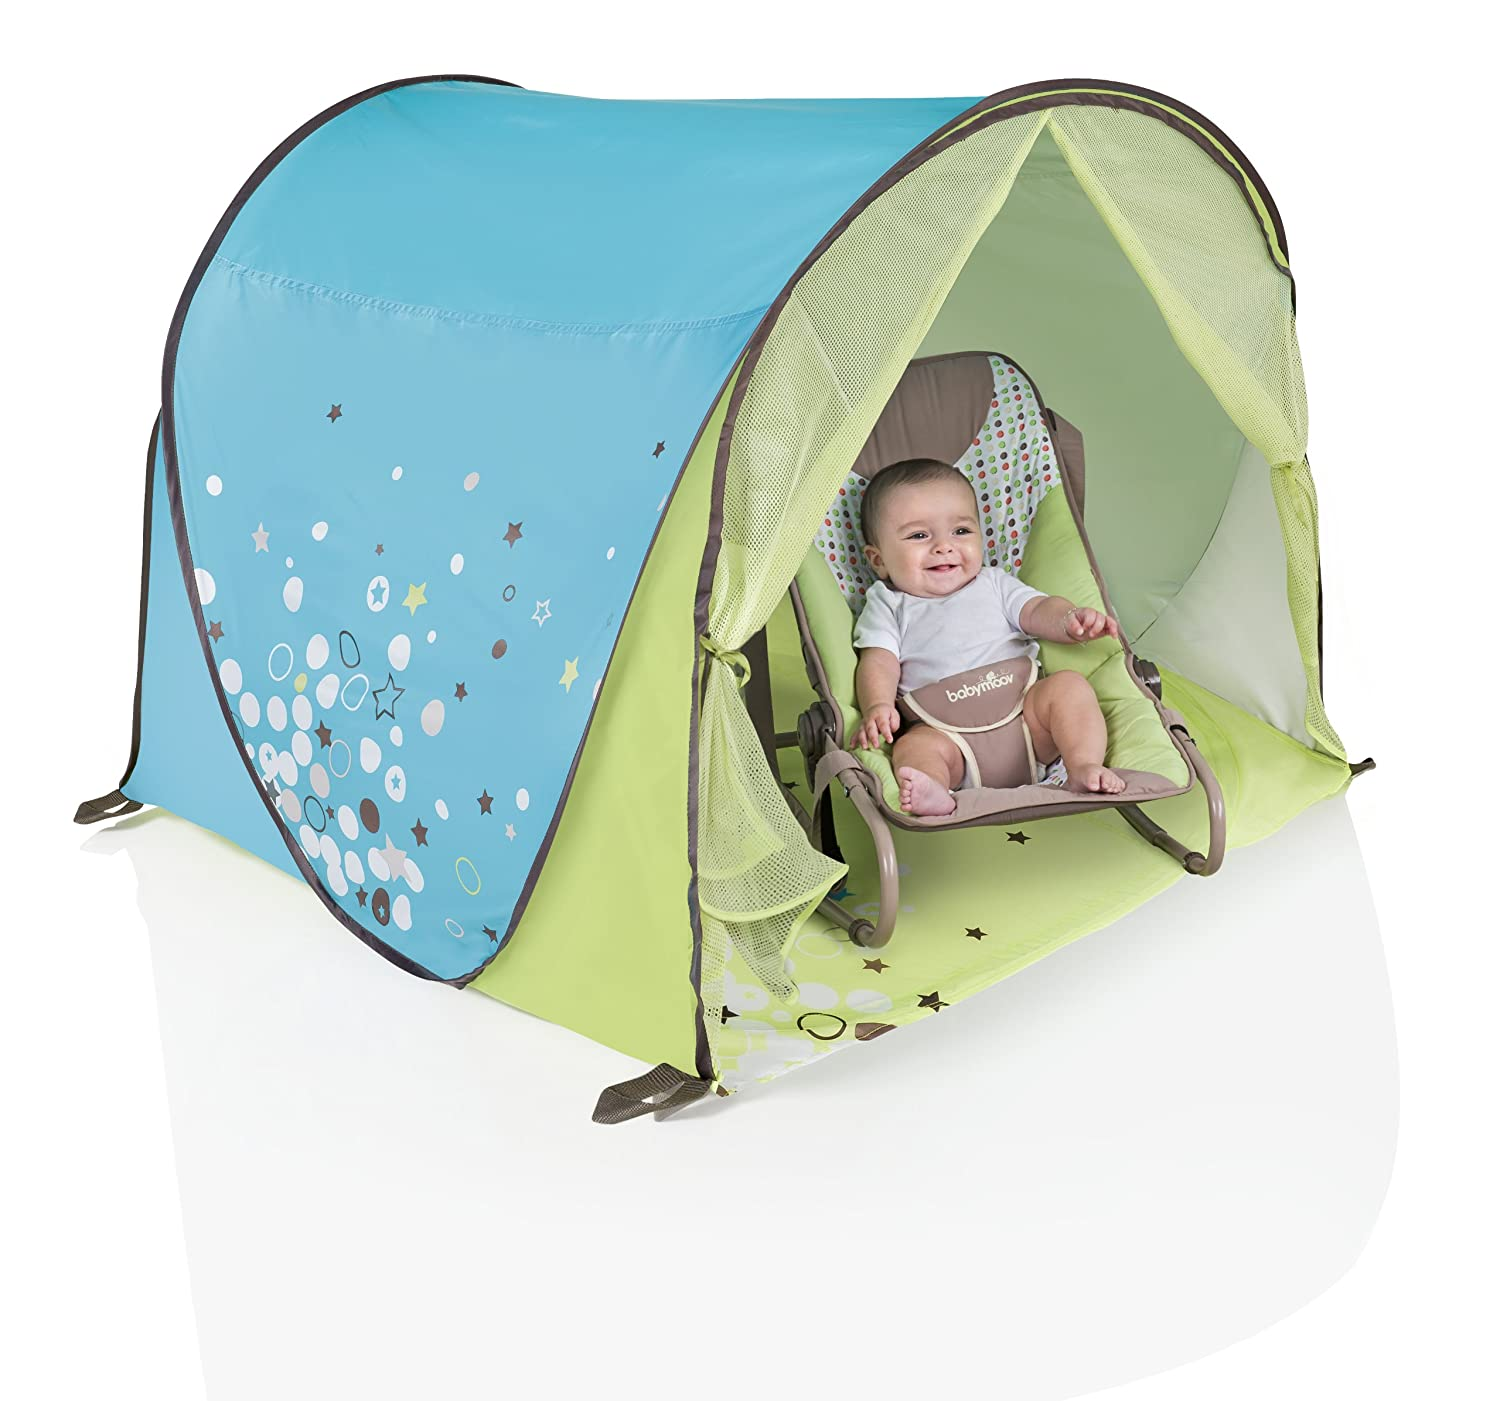 Amazon.com Babymoov Anti-UV Tent - UPF 50+ Sun Shelter for Toddlers and Children easily folds into a Carrying Bag for Outdoors u0026 Beach Baby  sc 1 st  Amazon.com & Amazon.com: Babymoov Anti-UV Tent - UPF 50+ Sun Shelter for ...